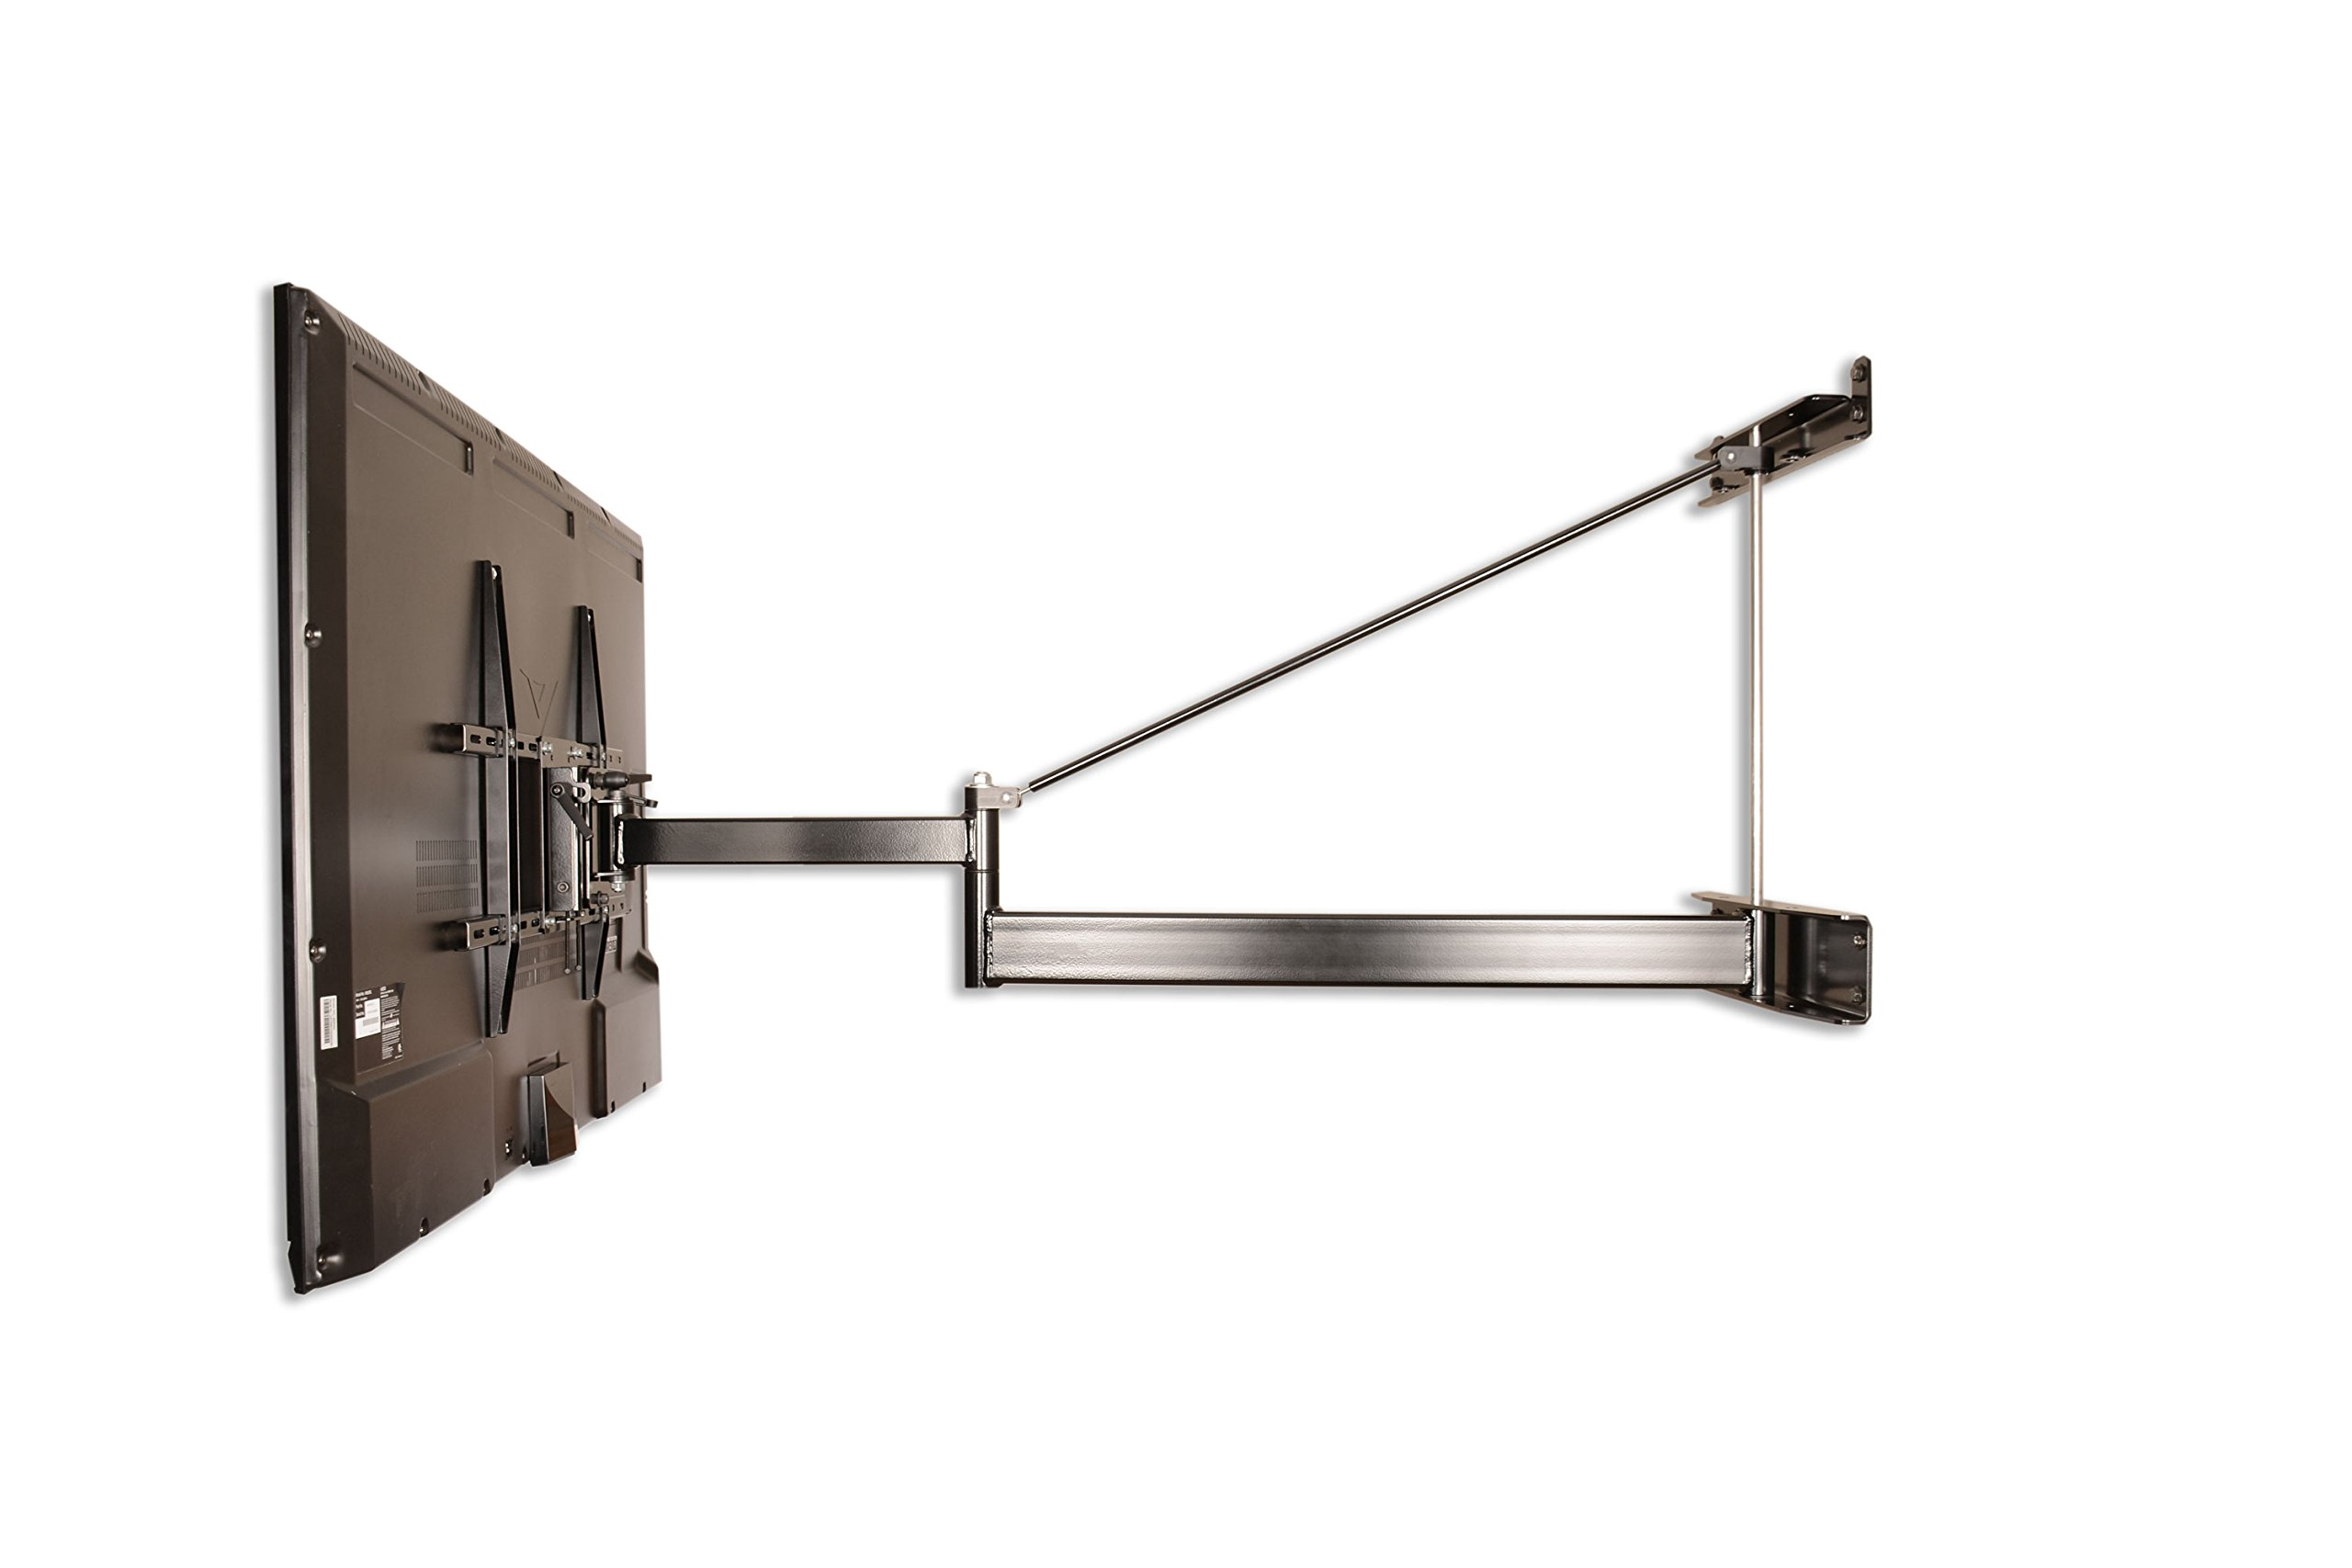 Extra Long Arm TV Mount, 55″-75″ Panel TVs, Extends 52″